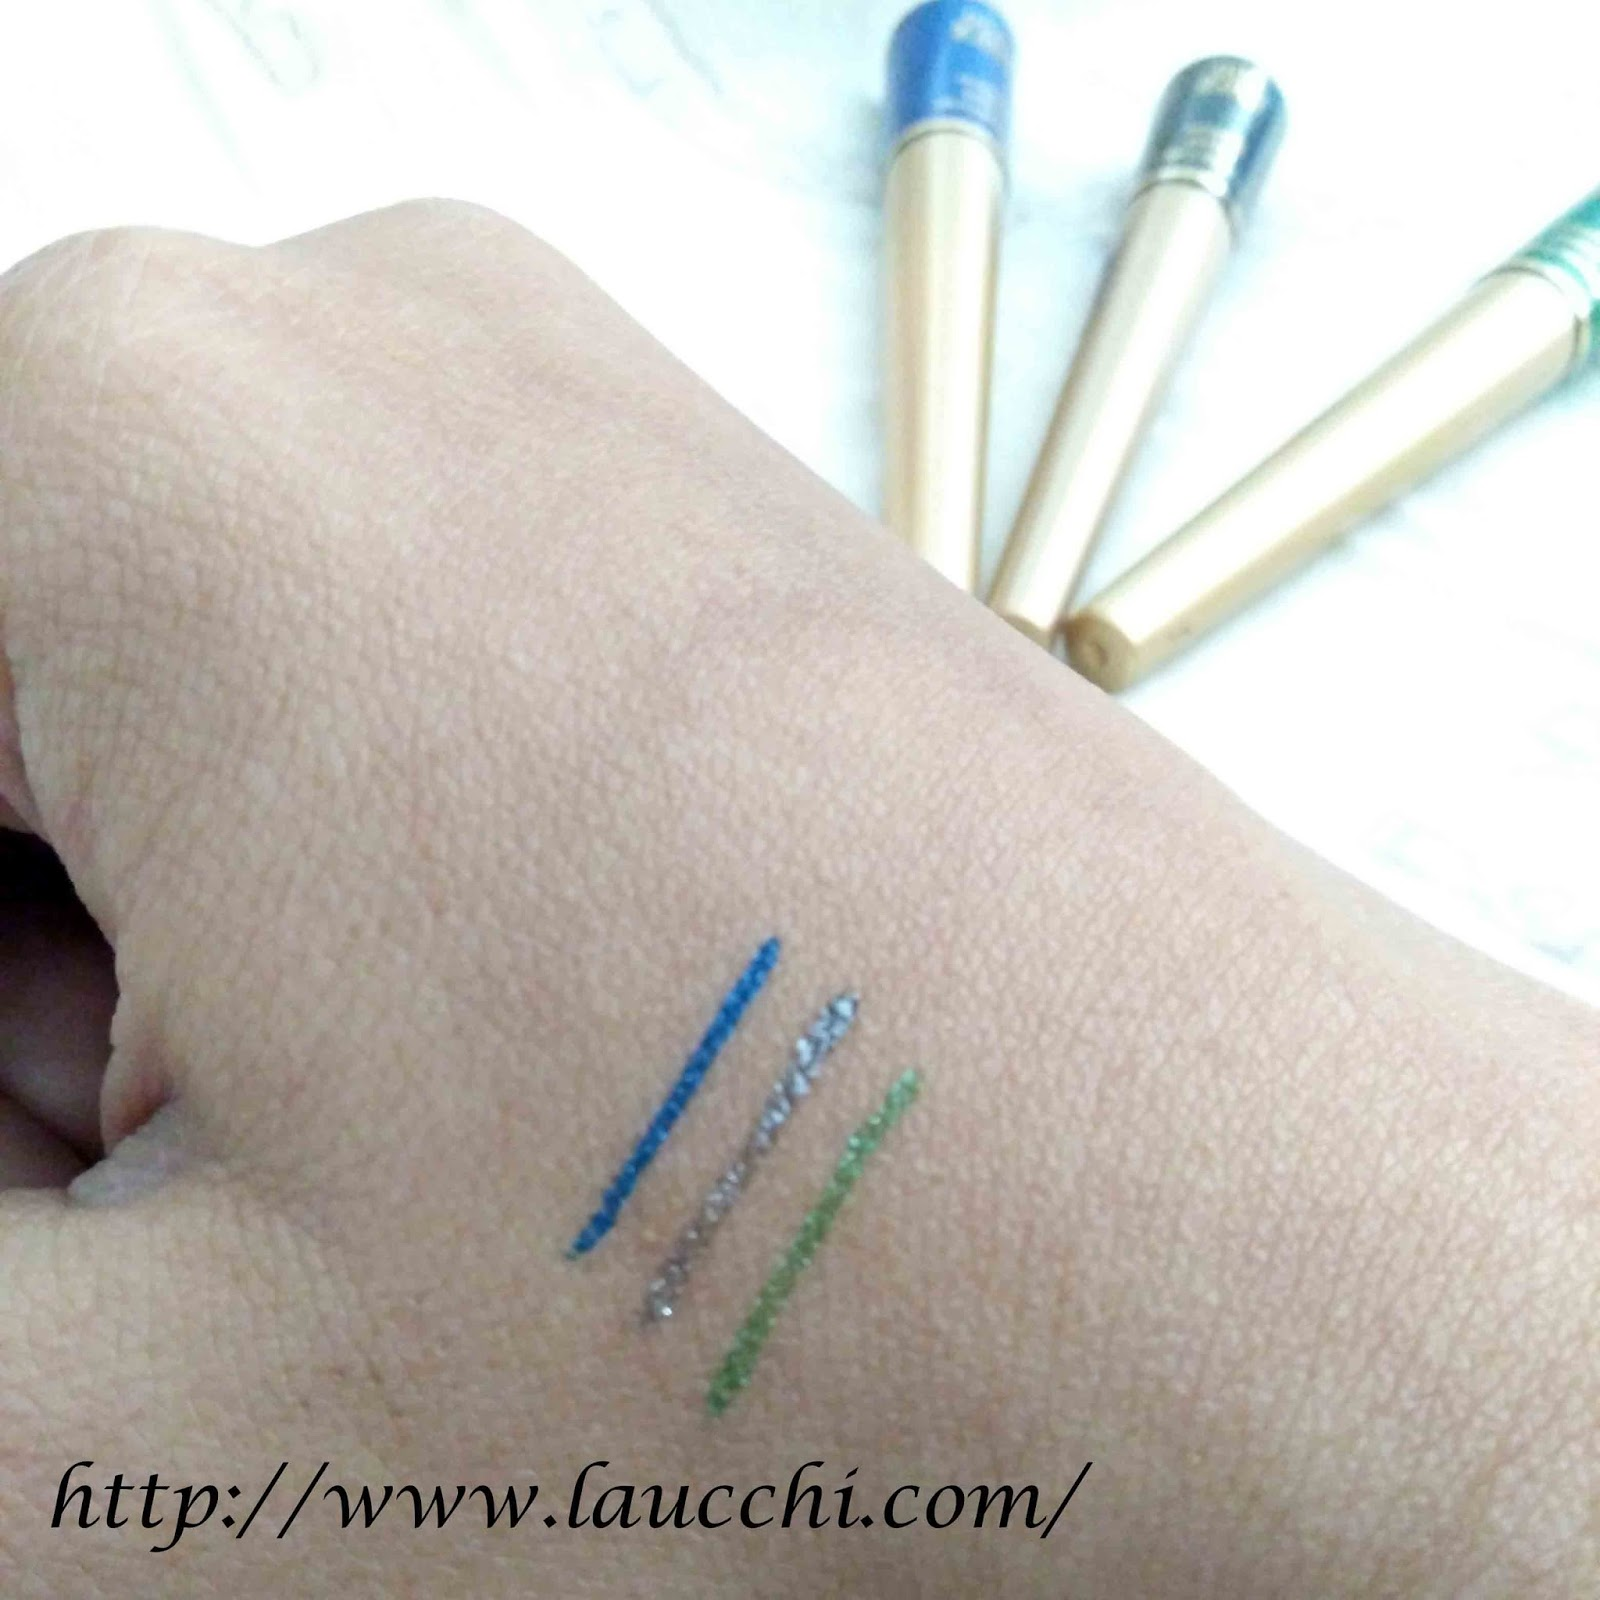 Laucchis Diary Sponsored Review Lively Eyes With Inez 900 Color Contour Plus Loose Eyeshadow Powder Sparkling Silver In The Other Side Intense Liquid Eyeliner 04 Imperial Black Is Not Really It More Grayish Than